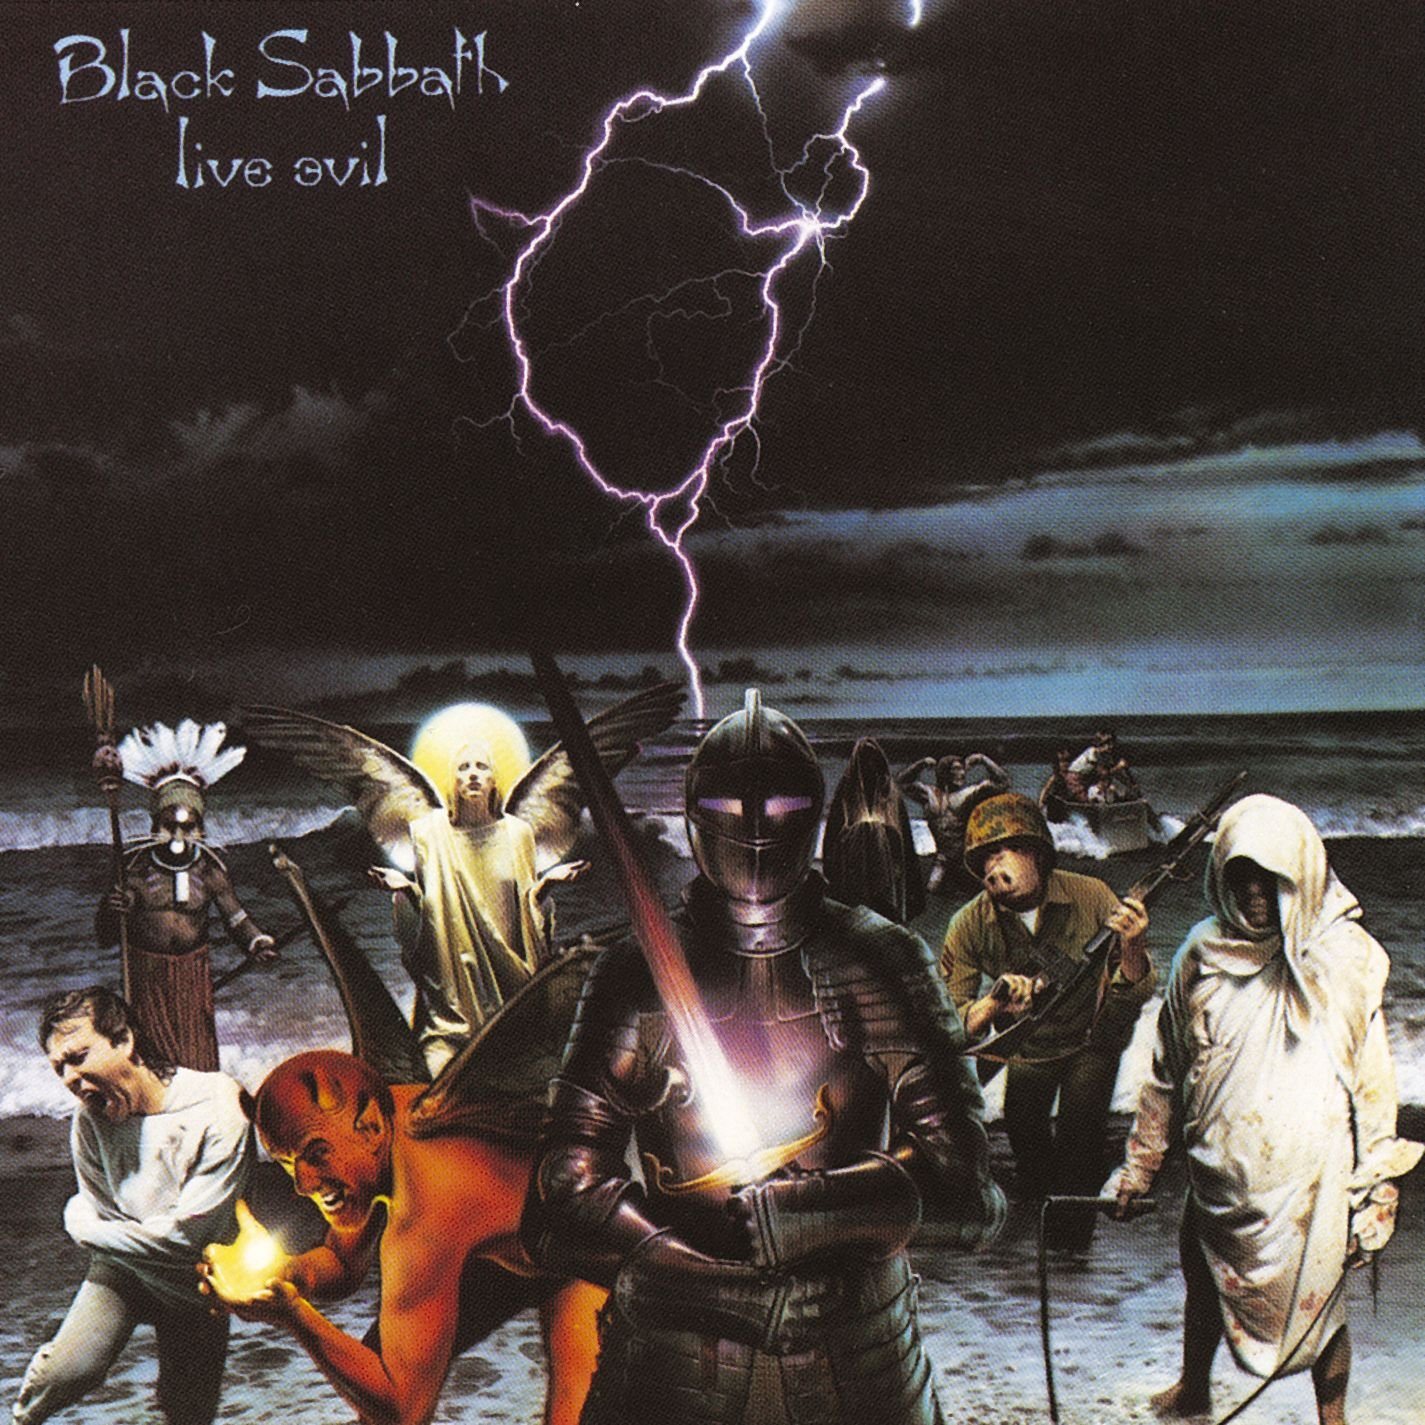 Live Evil (2CD) by Black Sabbath